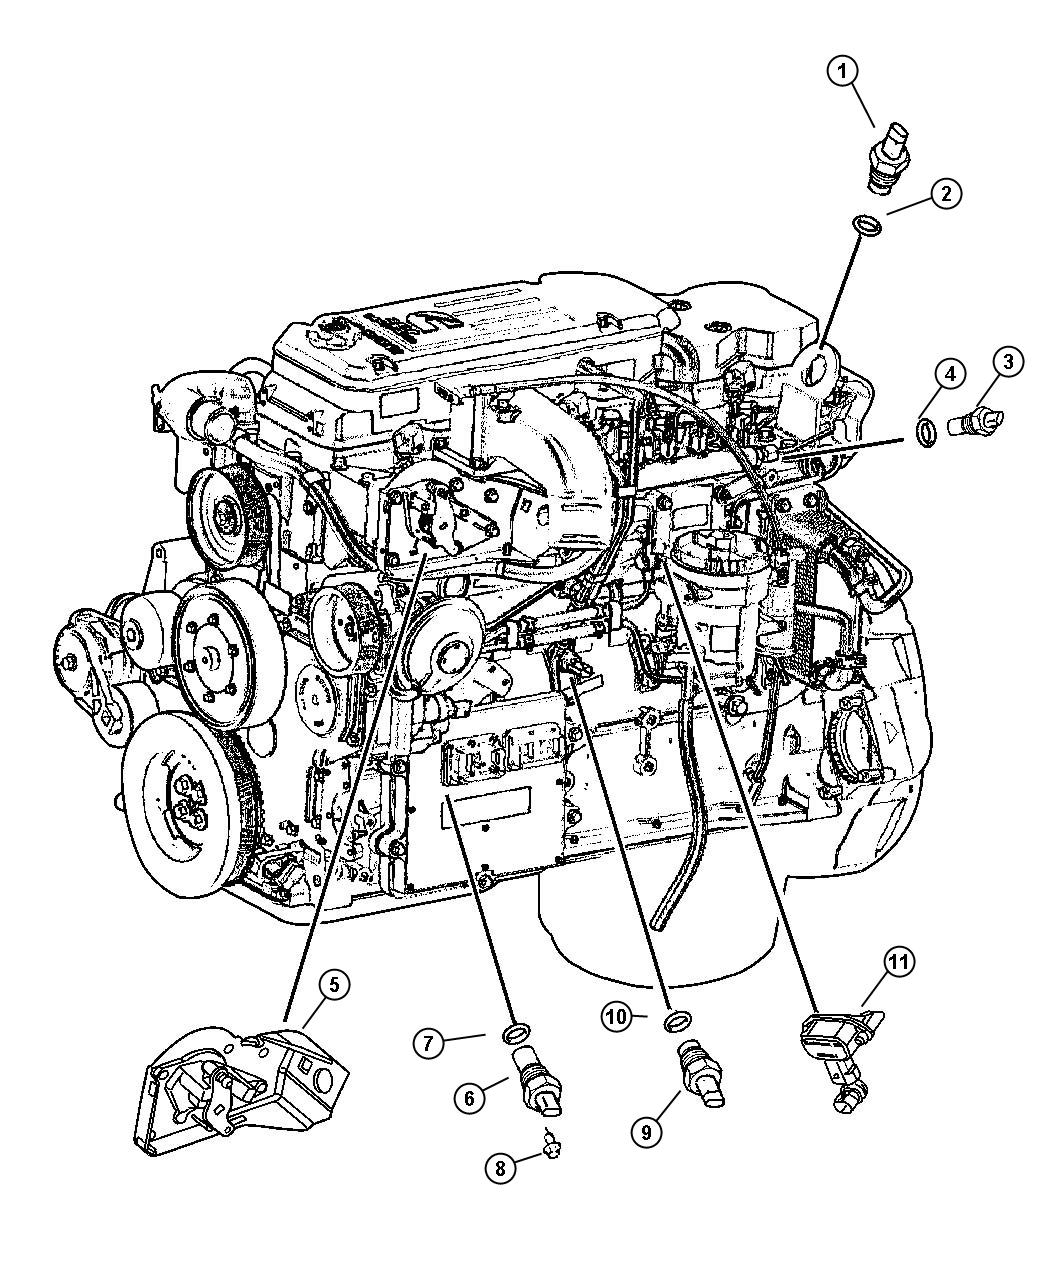 1997 Dodge Ram 2500 Engine Diagram